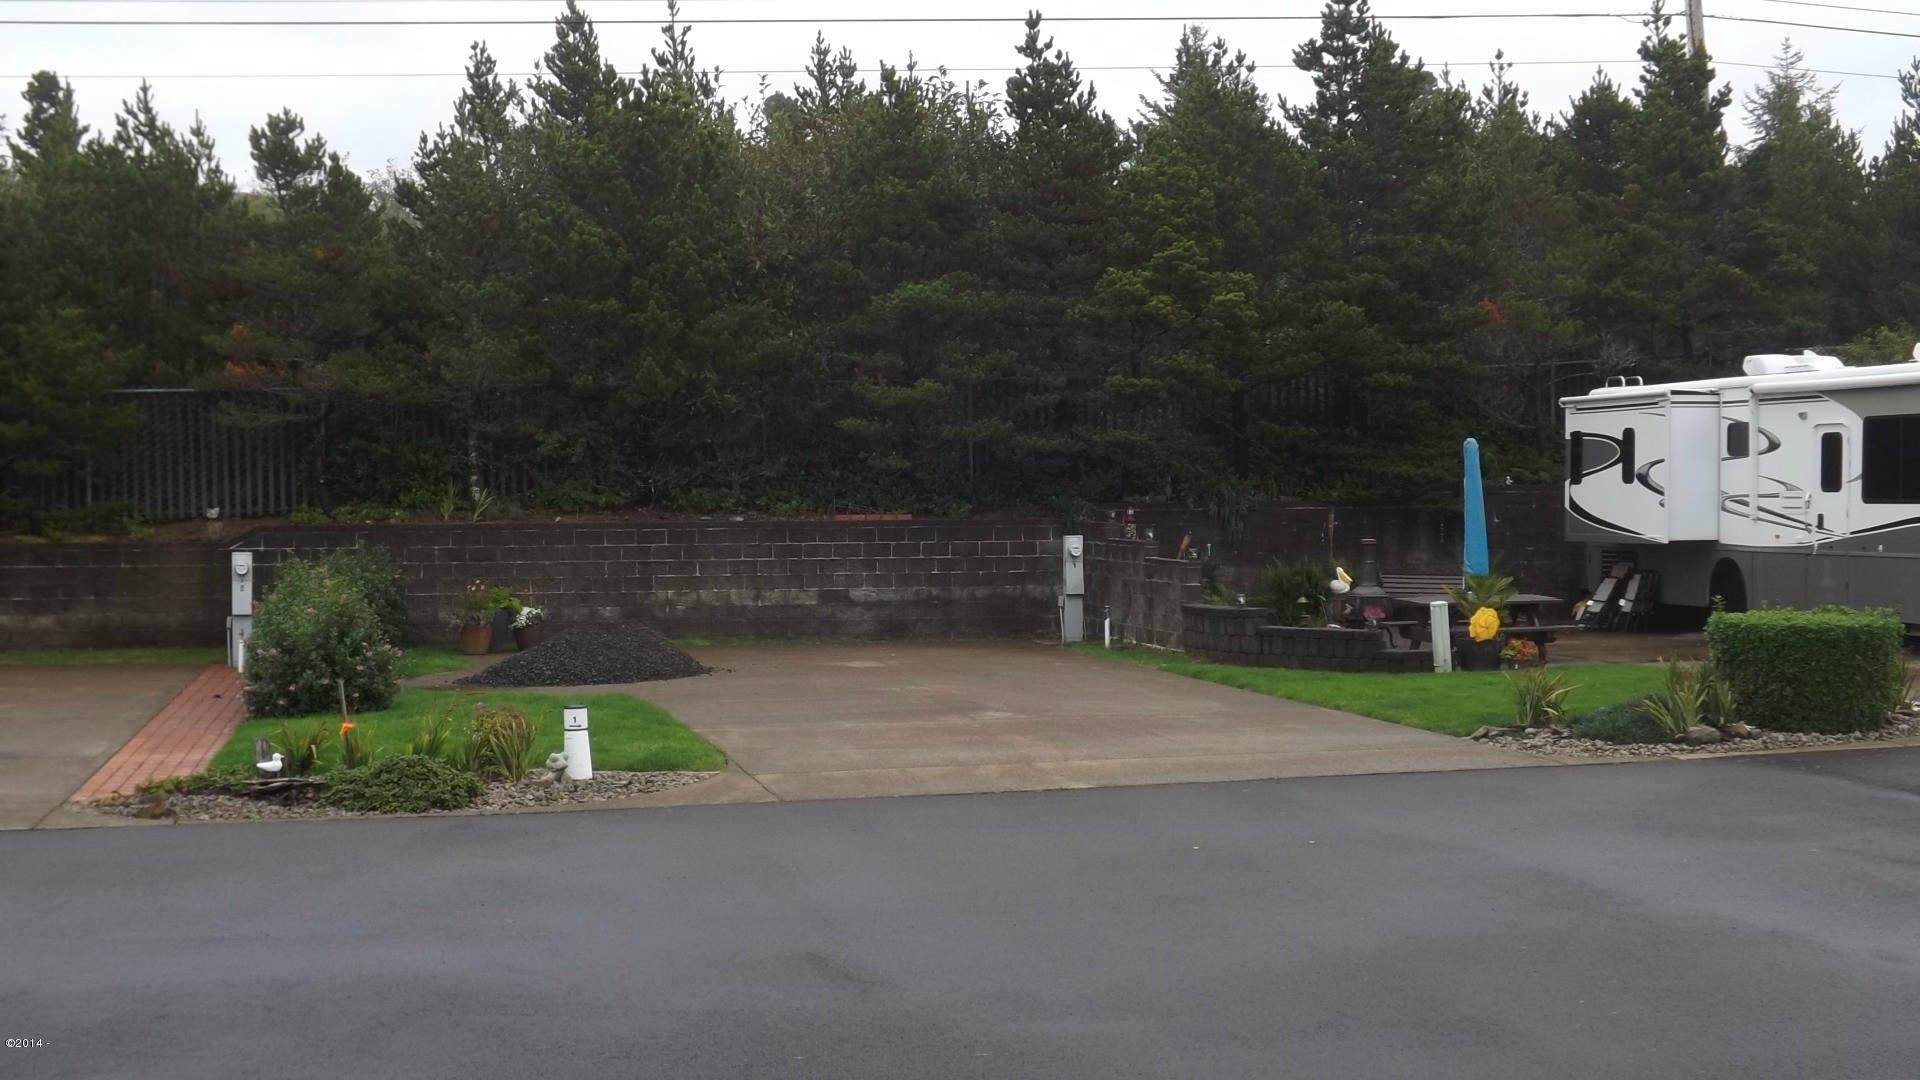 6225 N. Coast Hwy Lot  1, Newport, OR 97365 - Lot 1 View from the street 9-24-14